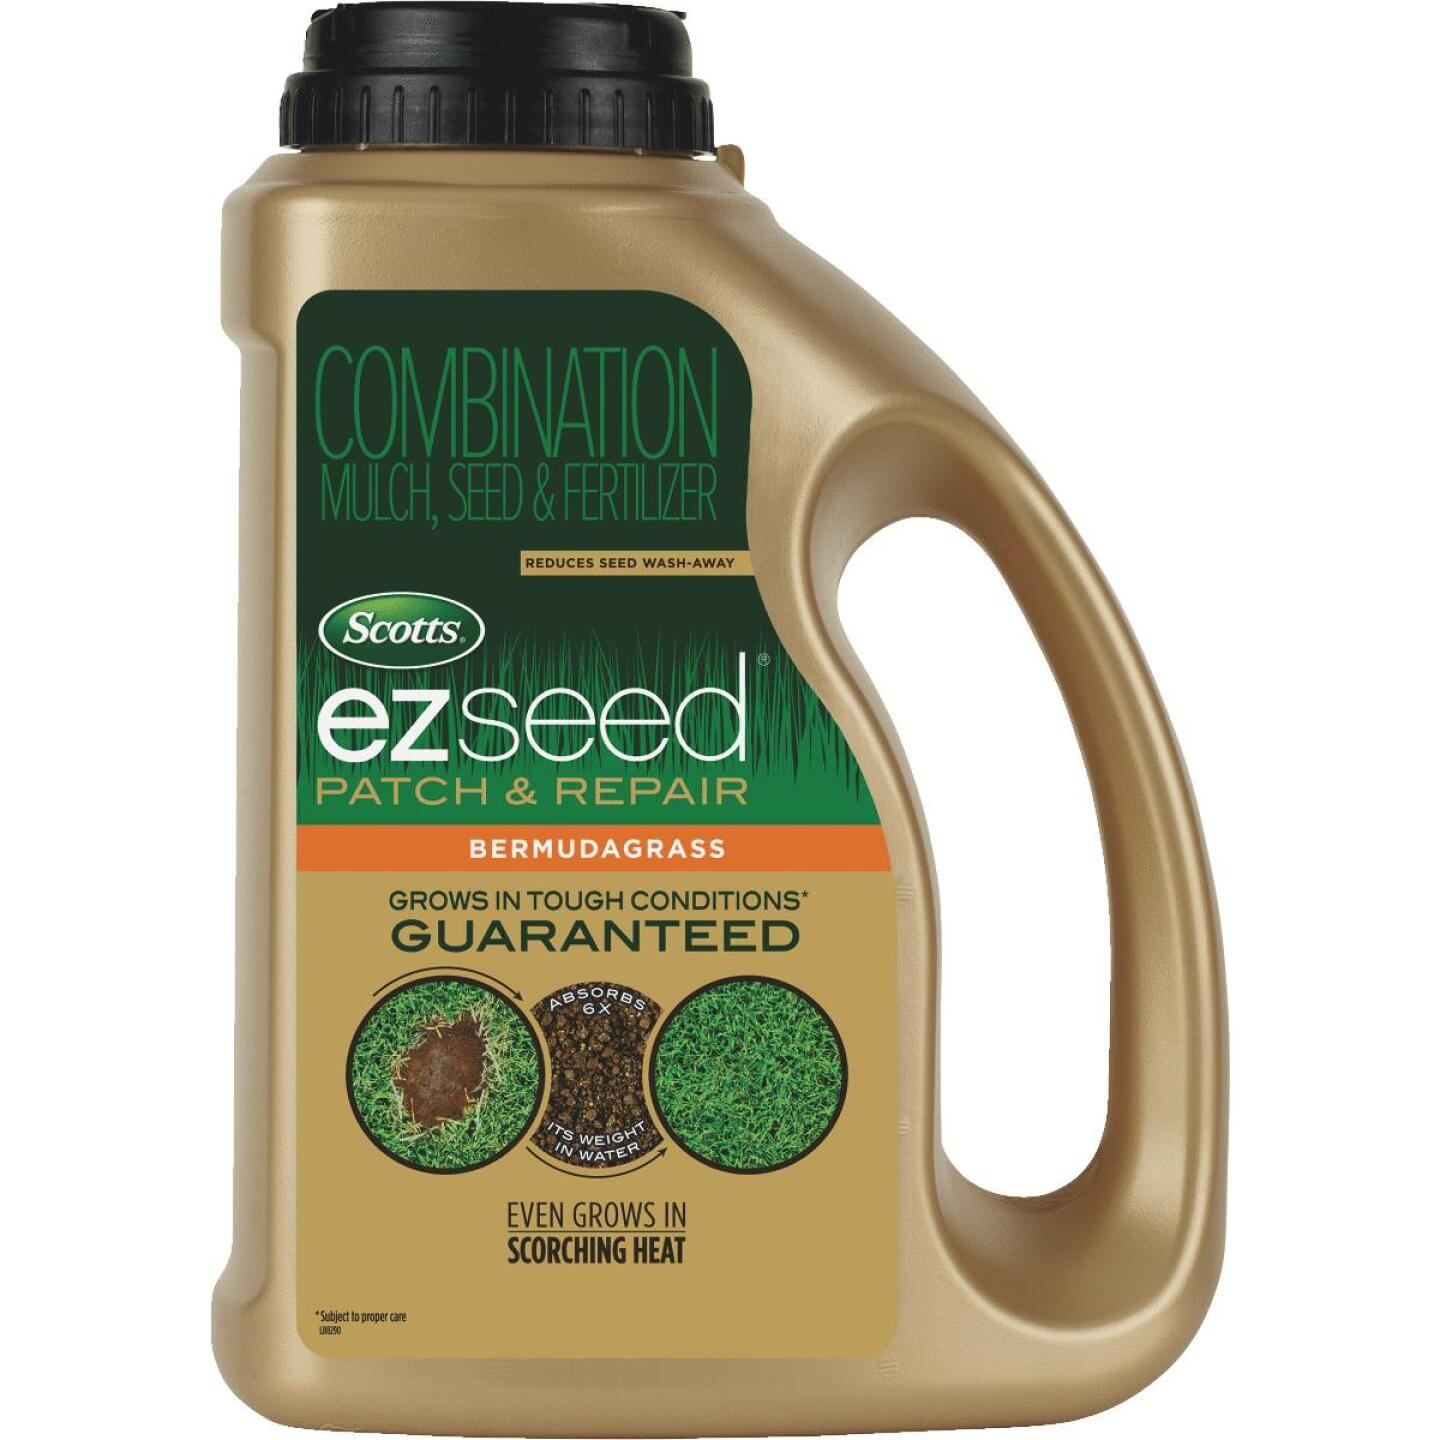 Scotts eZ Seed 3.75 Lb. 85 Sq. Ft. Coverage Bermuda Grass Patch & Repair Image 1